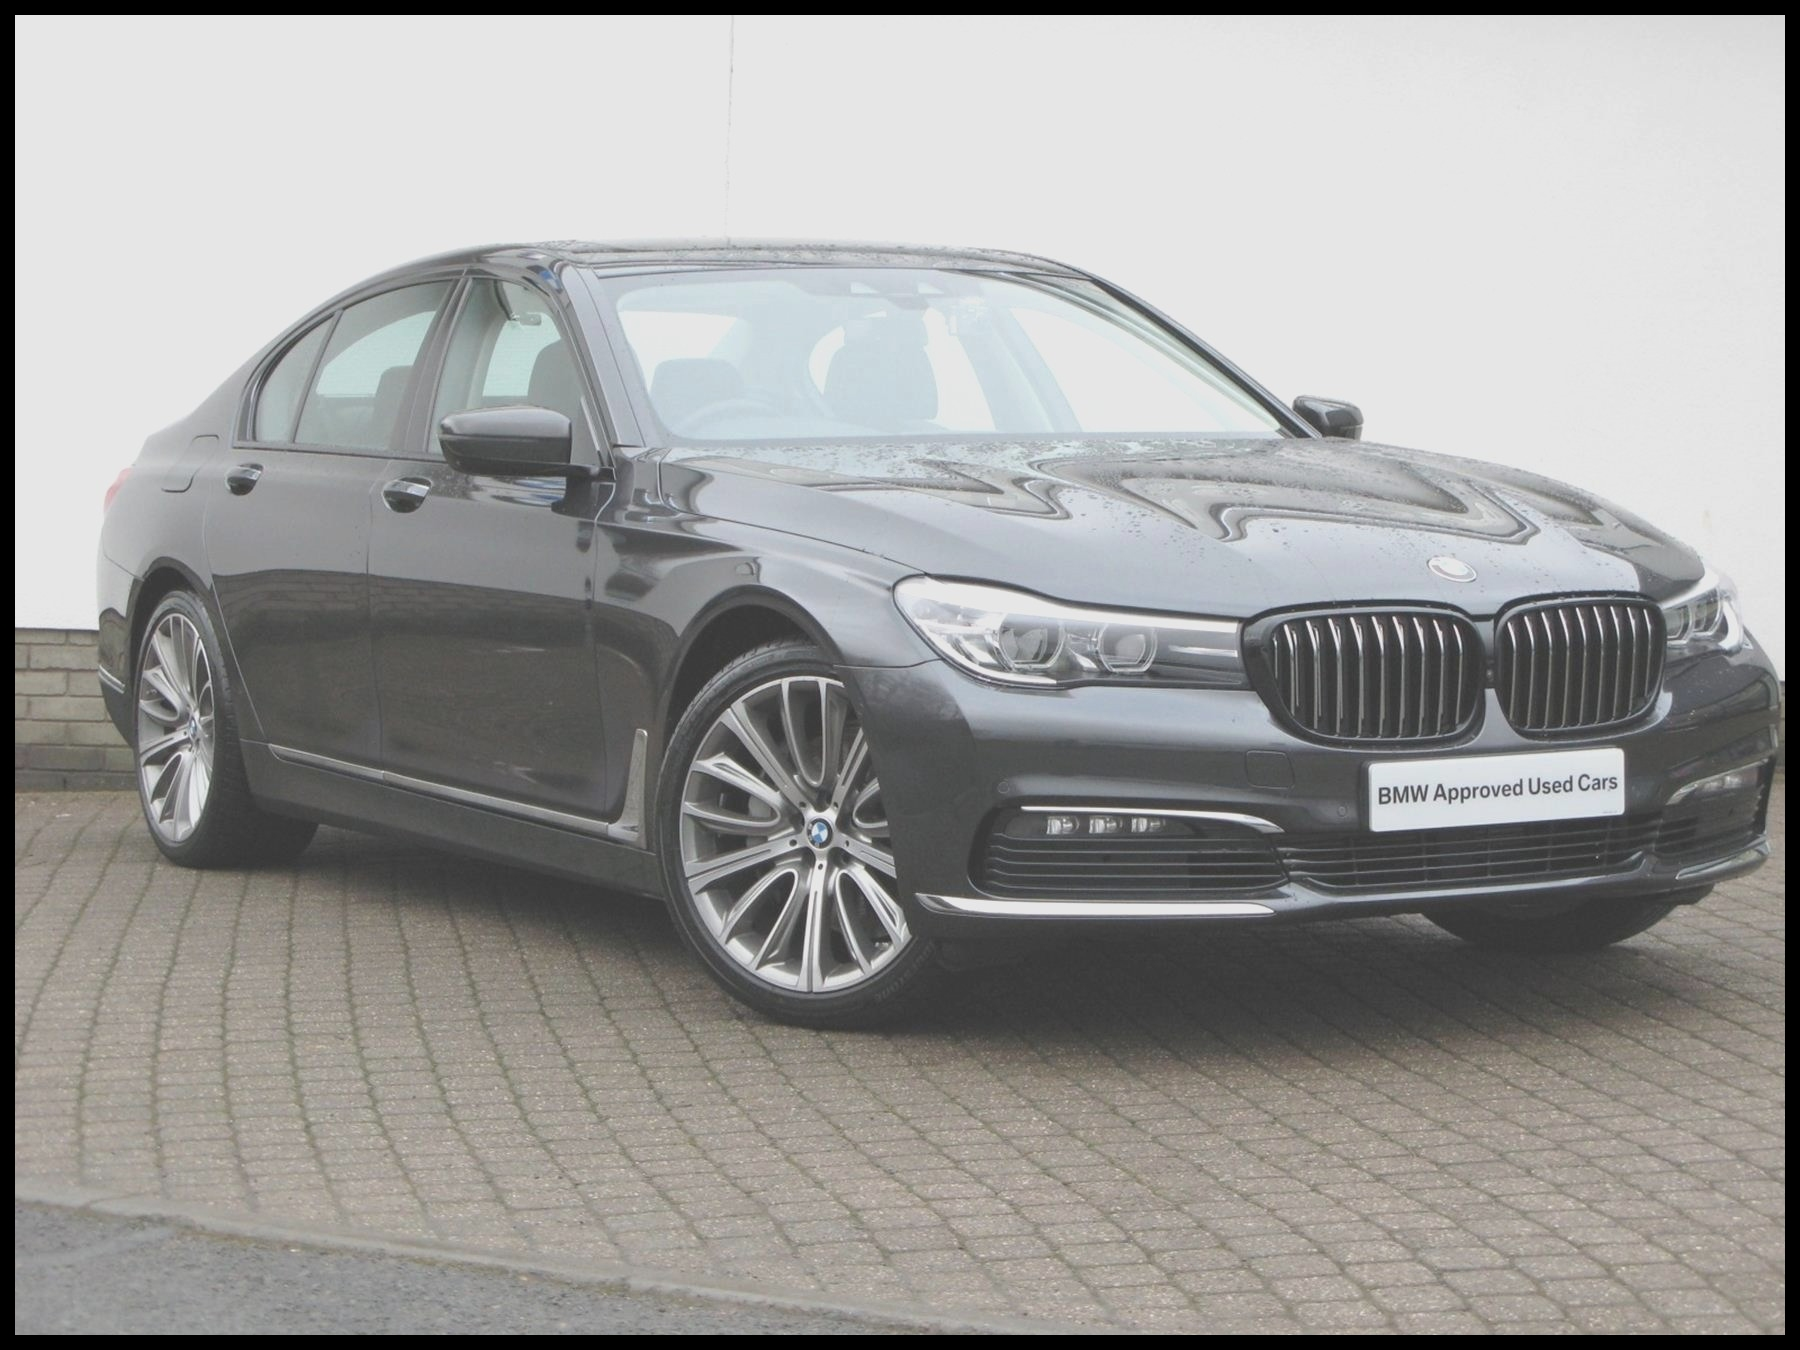 7 Series Bmw Lovely Latest Used 2017 Bmw 7 Series G11 740d Xdrive High Quality Wallpaper Bmw 735i